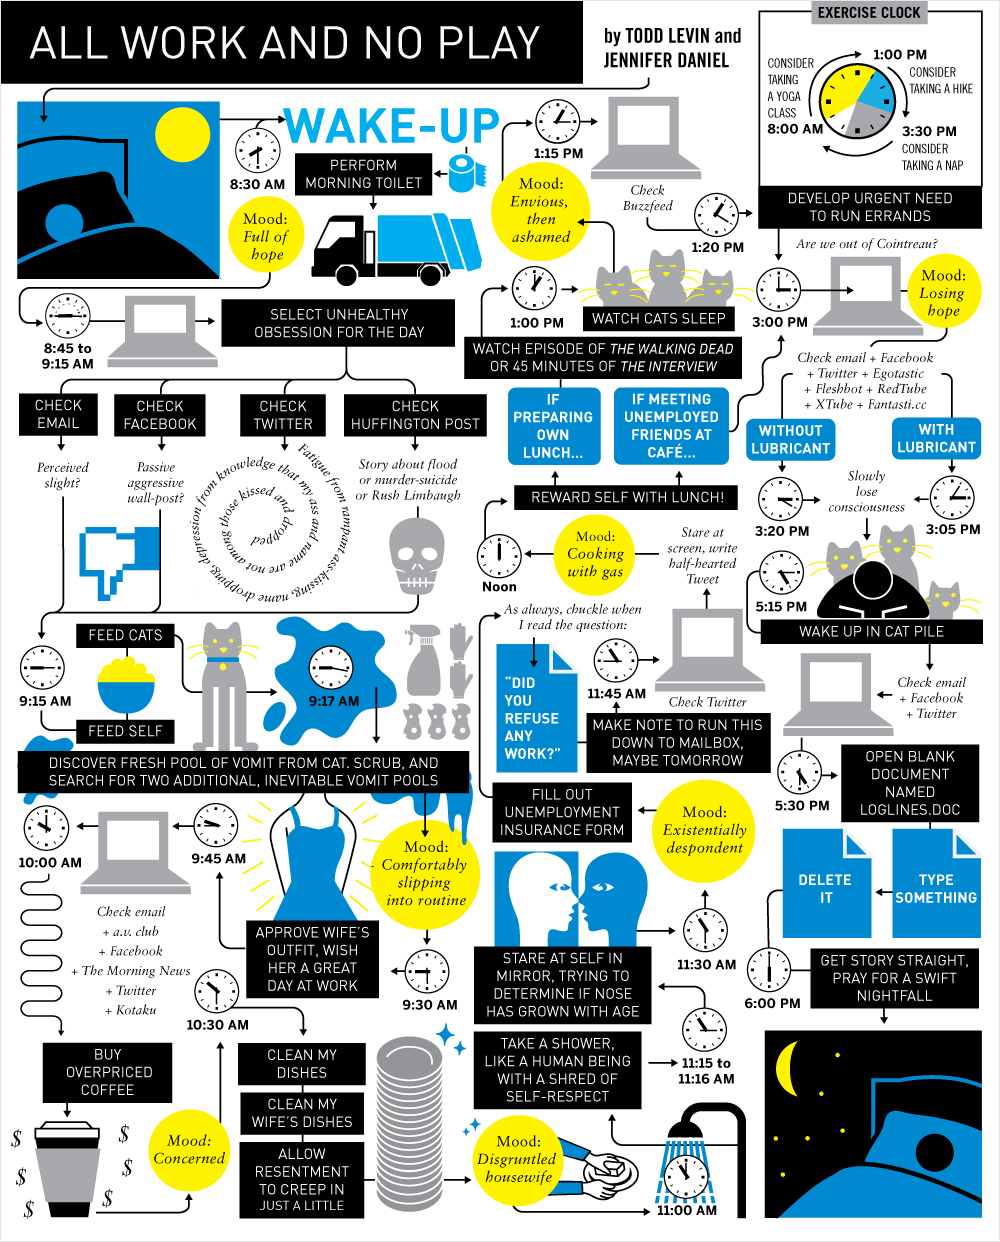 21-Creative-Flowchart-Examples-for-Making-Important-Life-Decisions-Choose-a-Shocking-Subject